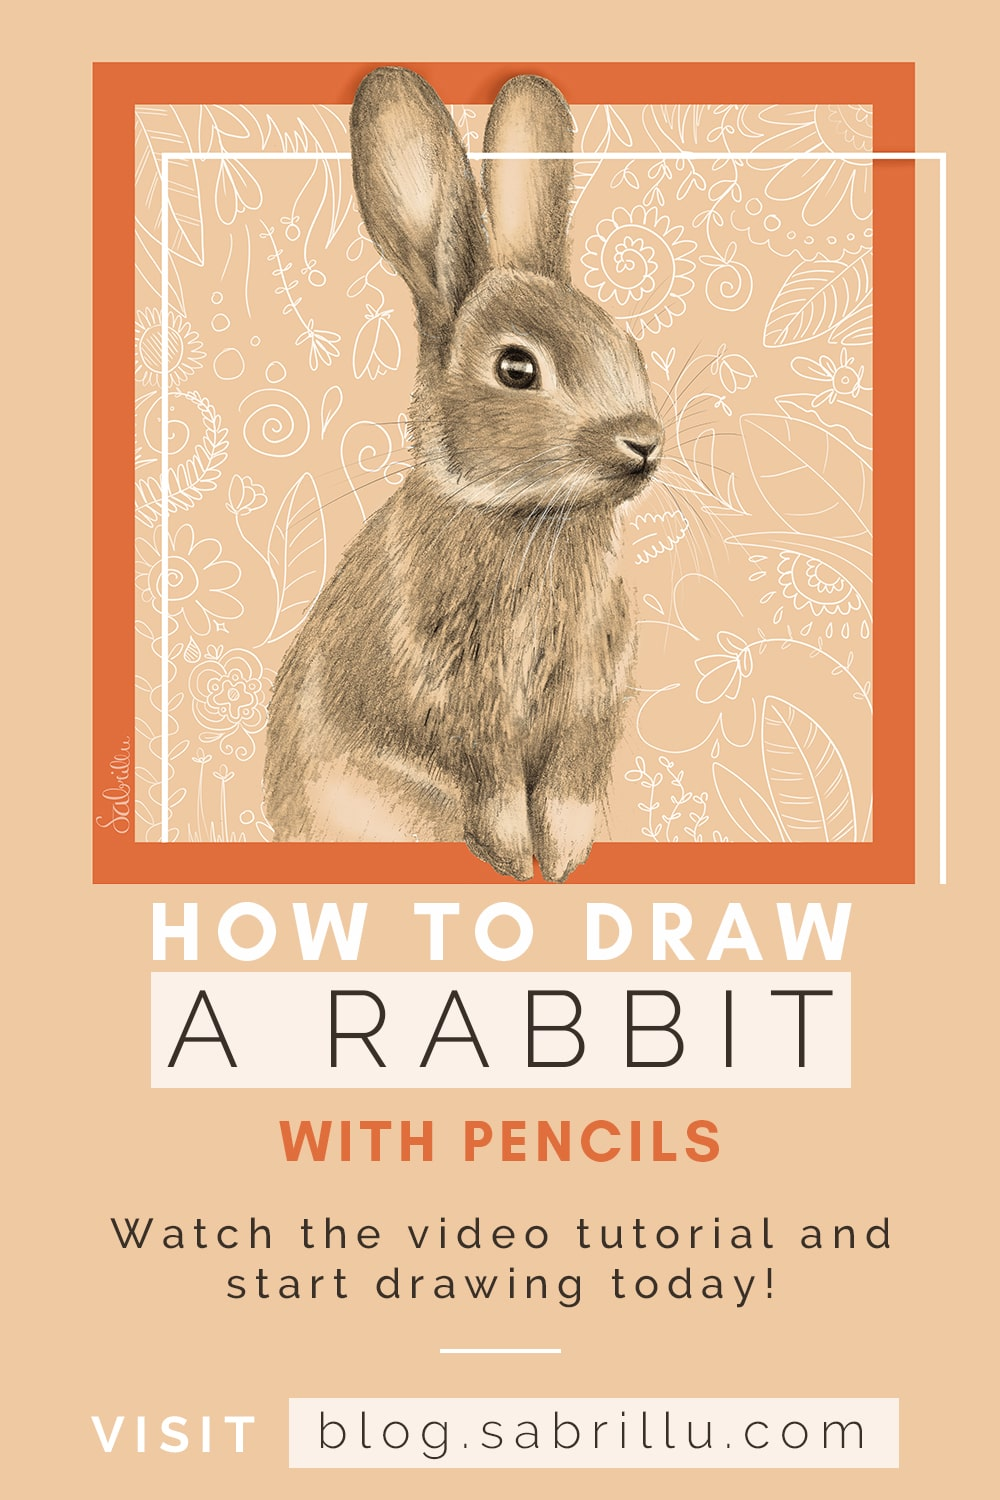 How to draw a rabbit with pencils - video tutorial